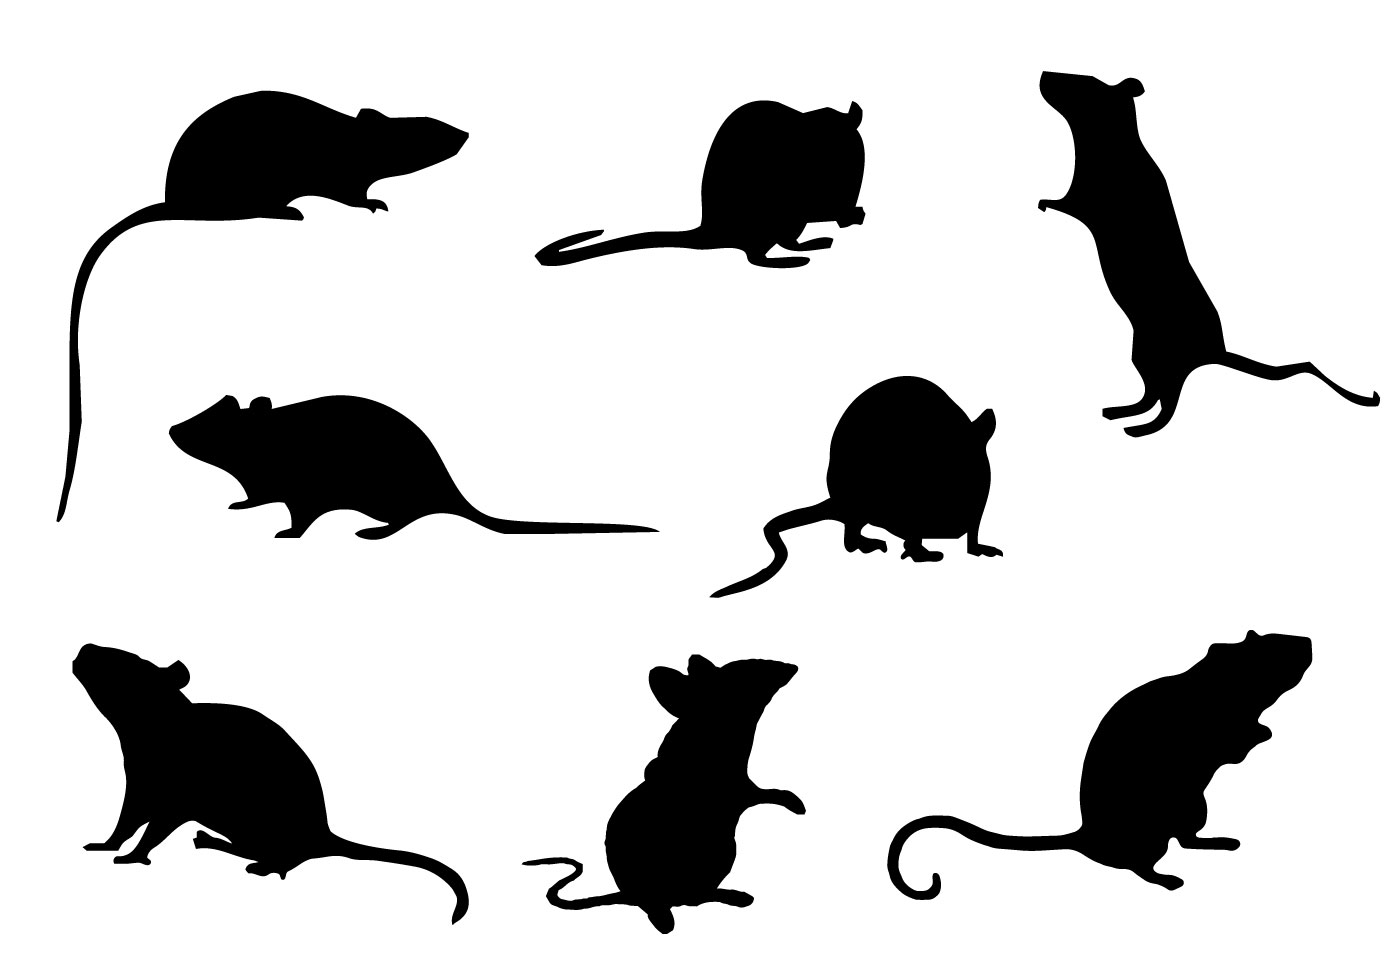 free mice silhouette vector - download free vector art, stock